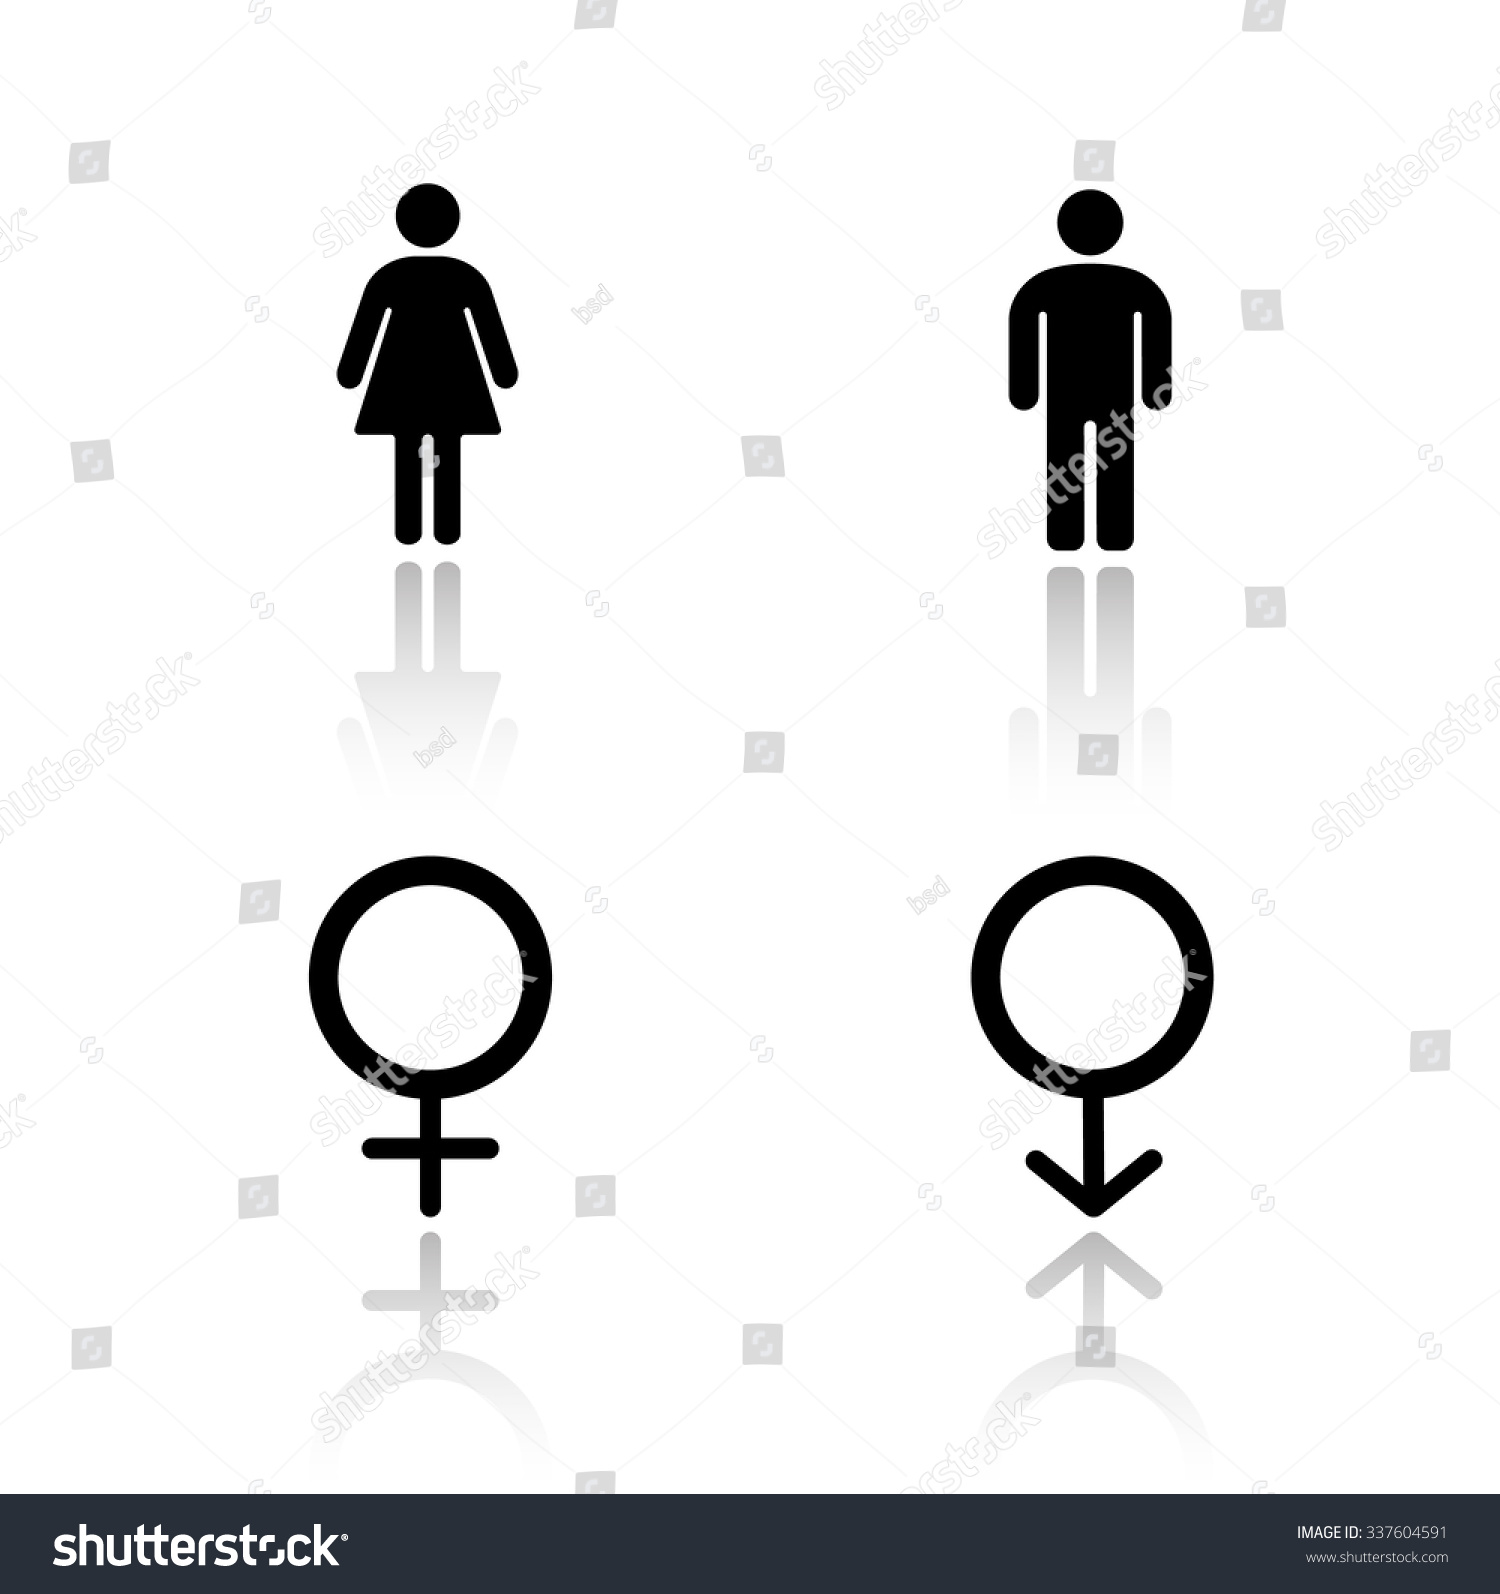 Man Woman Silhouettes Drop Shadow Icons Stock Vector -8178